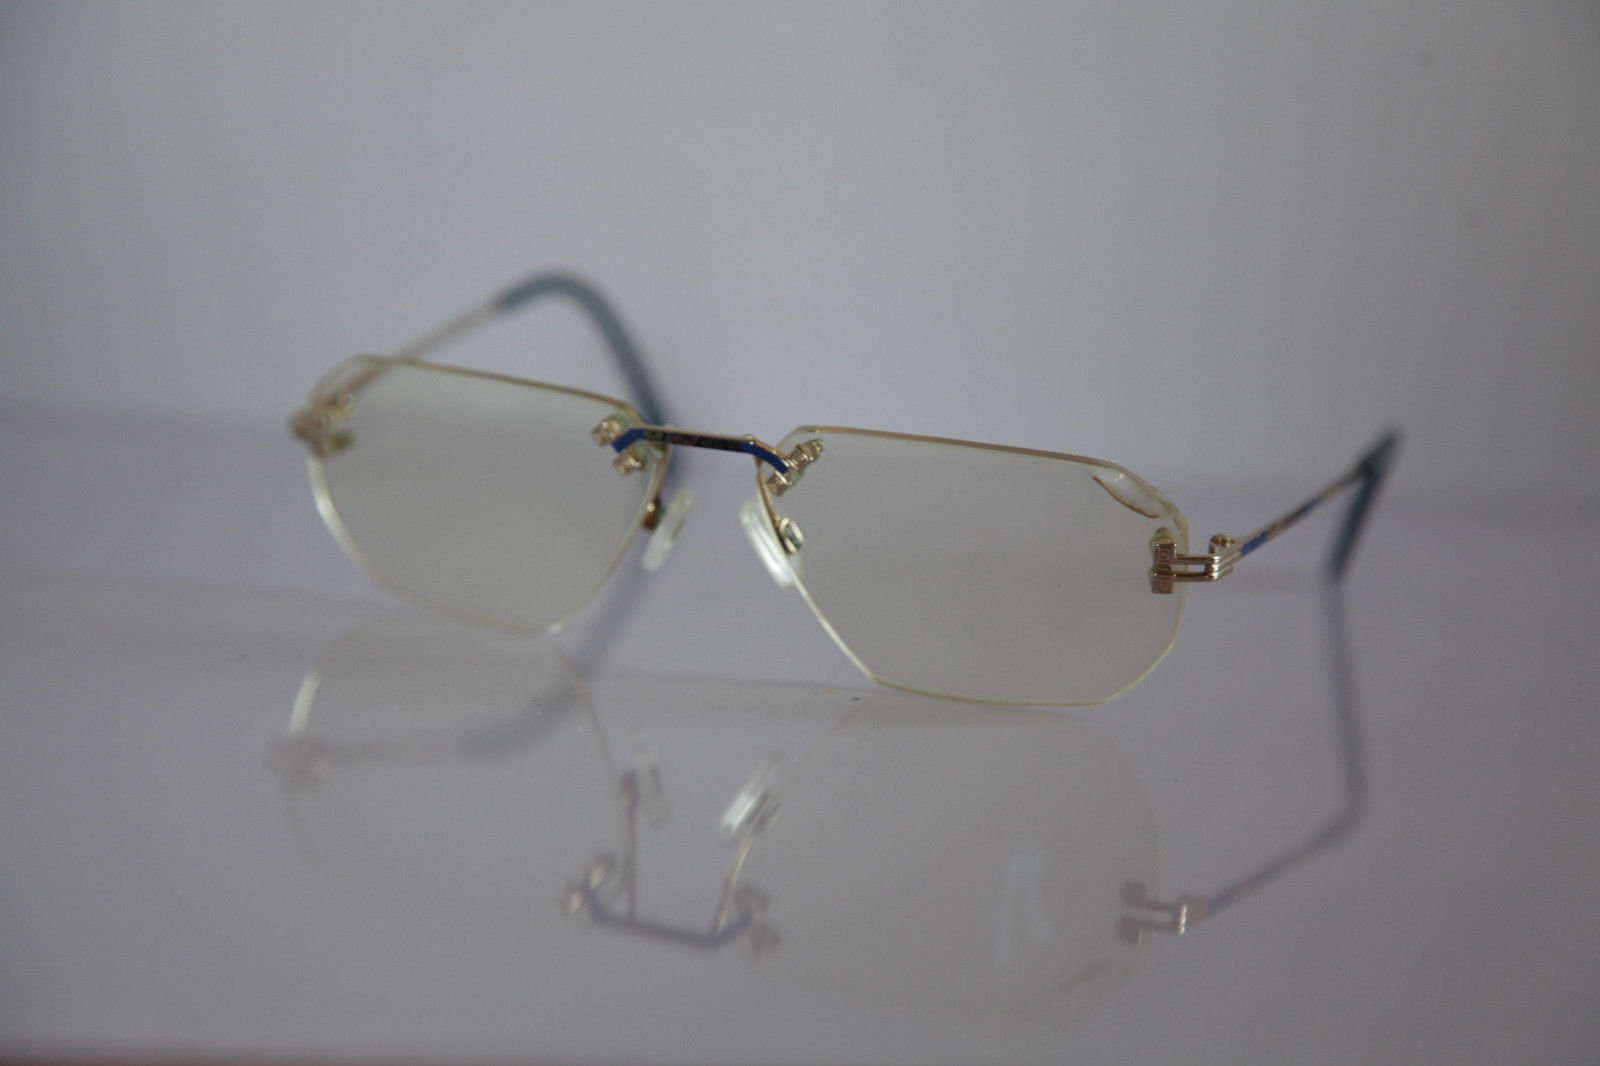 COLLECTION 2000 Eyewear, Gold Rimless Frame,  RX-Able Prescription Lens. GERMANY